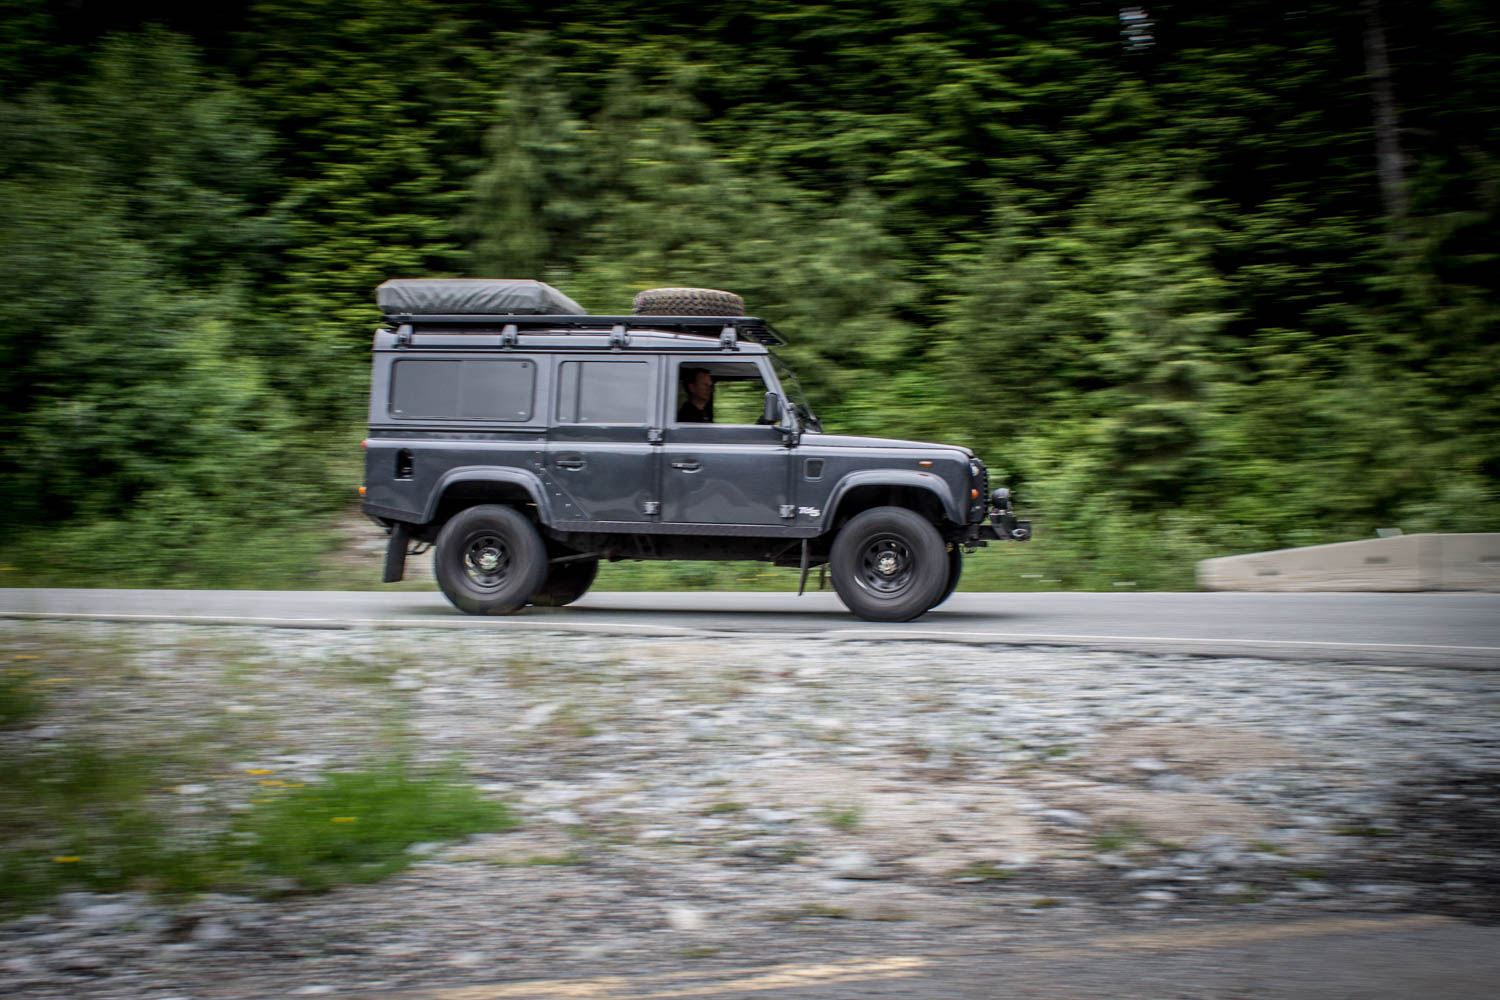 Land Rover Defender 110 TD5 side profile